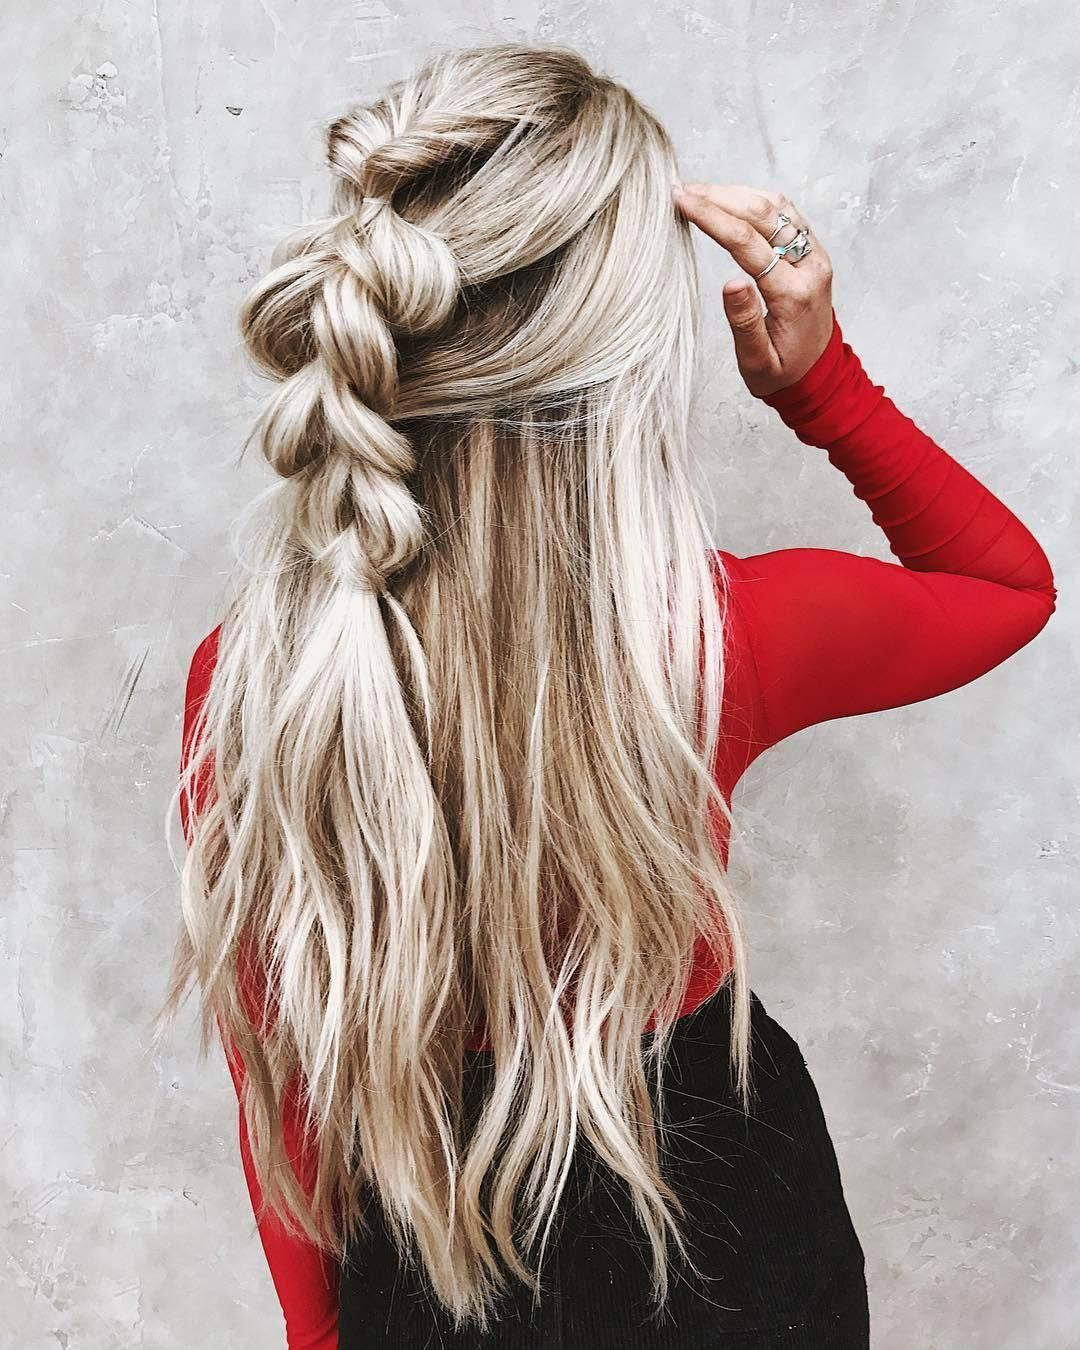 Messy Braided Hairstyle With Long Hair Women Long Hairstyles For Summer Longhairstylesideas Messy Braided Hairstyles Long Hair Styles Braided Hairstyles